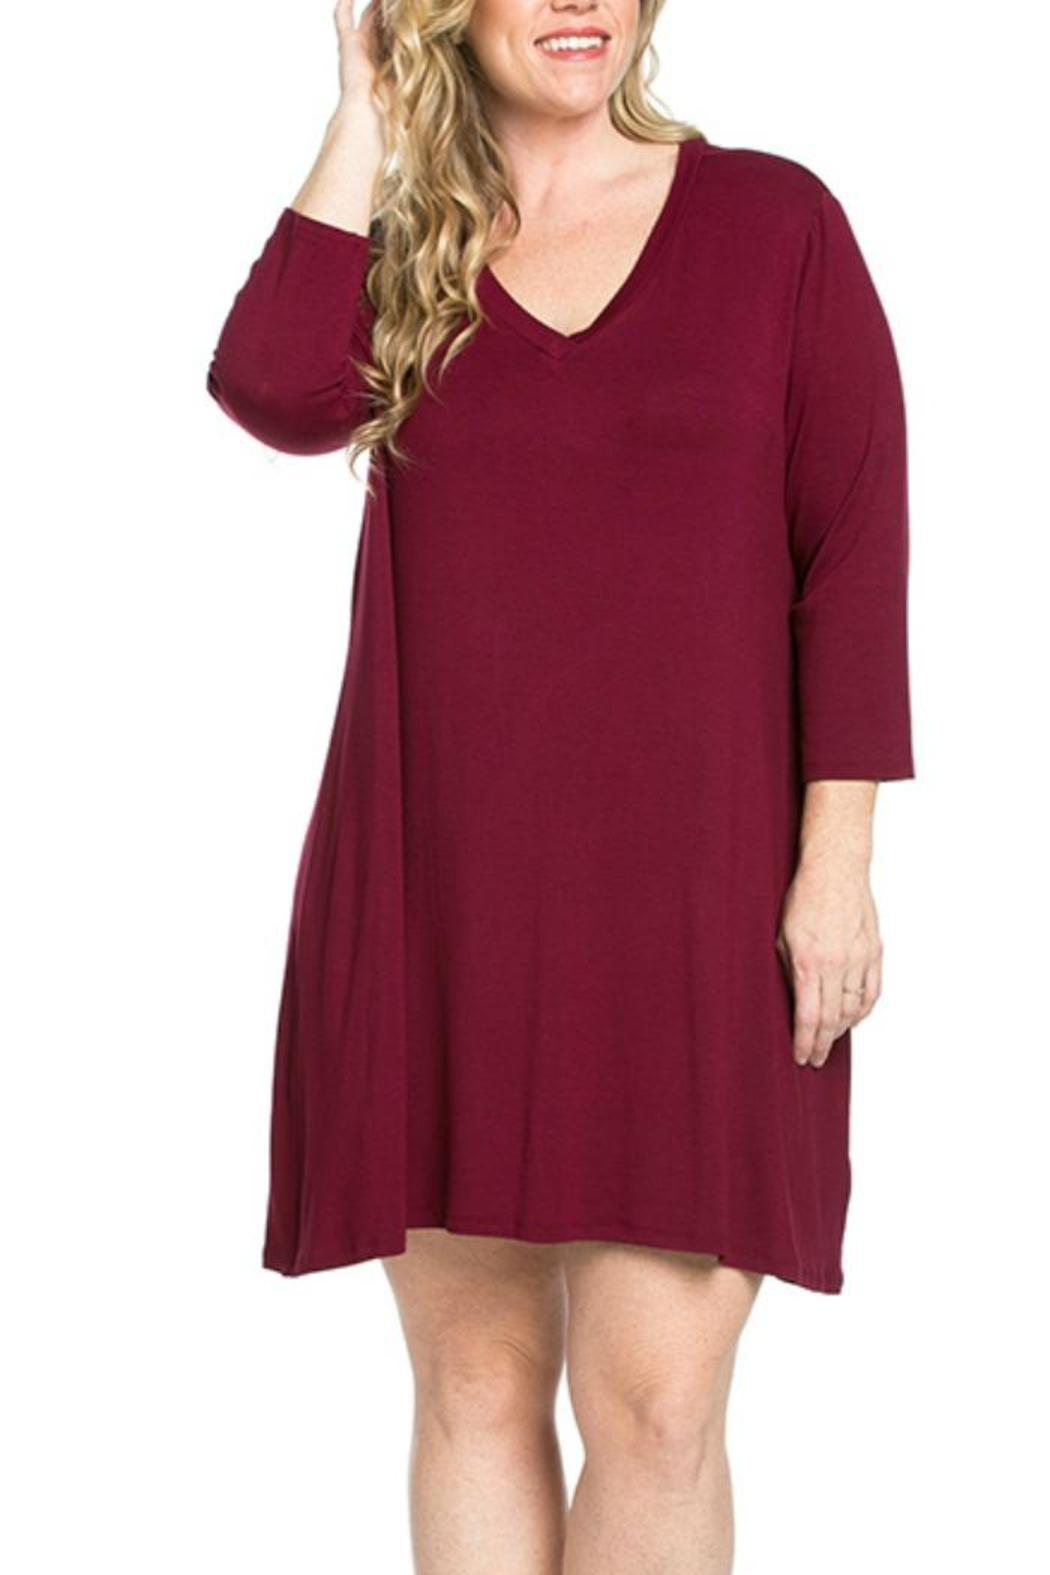 mittoshop plus size tunic-dress from oklahoma by sassy sisters